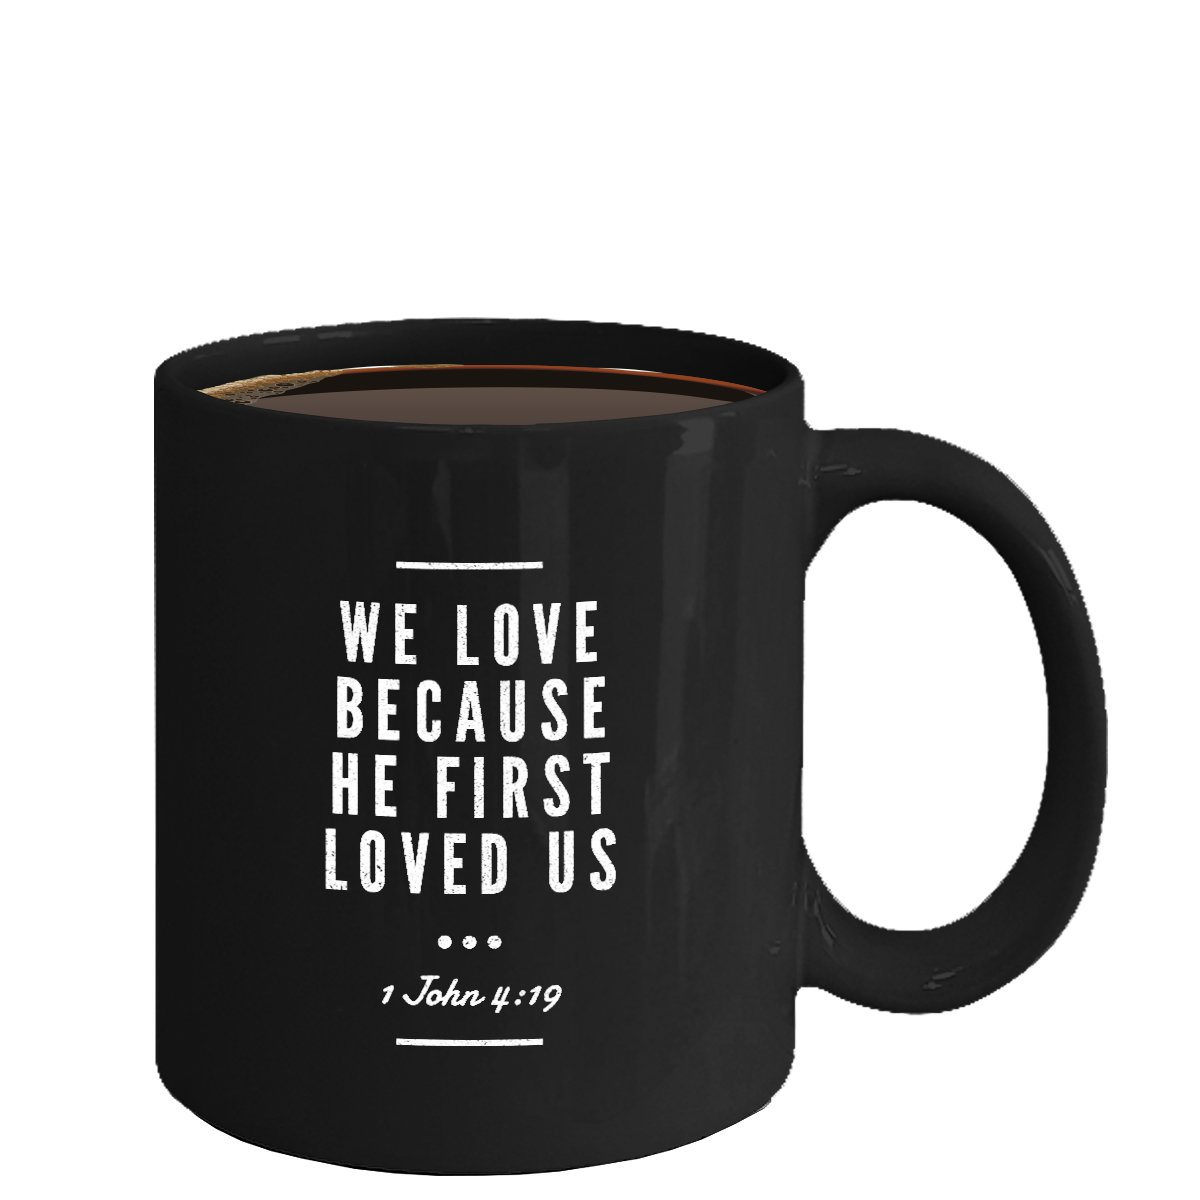 Christian Ceramic Coffee Mug - He First Loved Us - Cool Large Cup (Black) - Best Gift for Men, Women